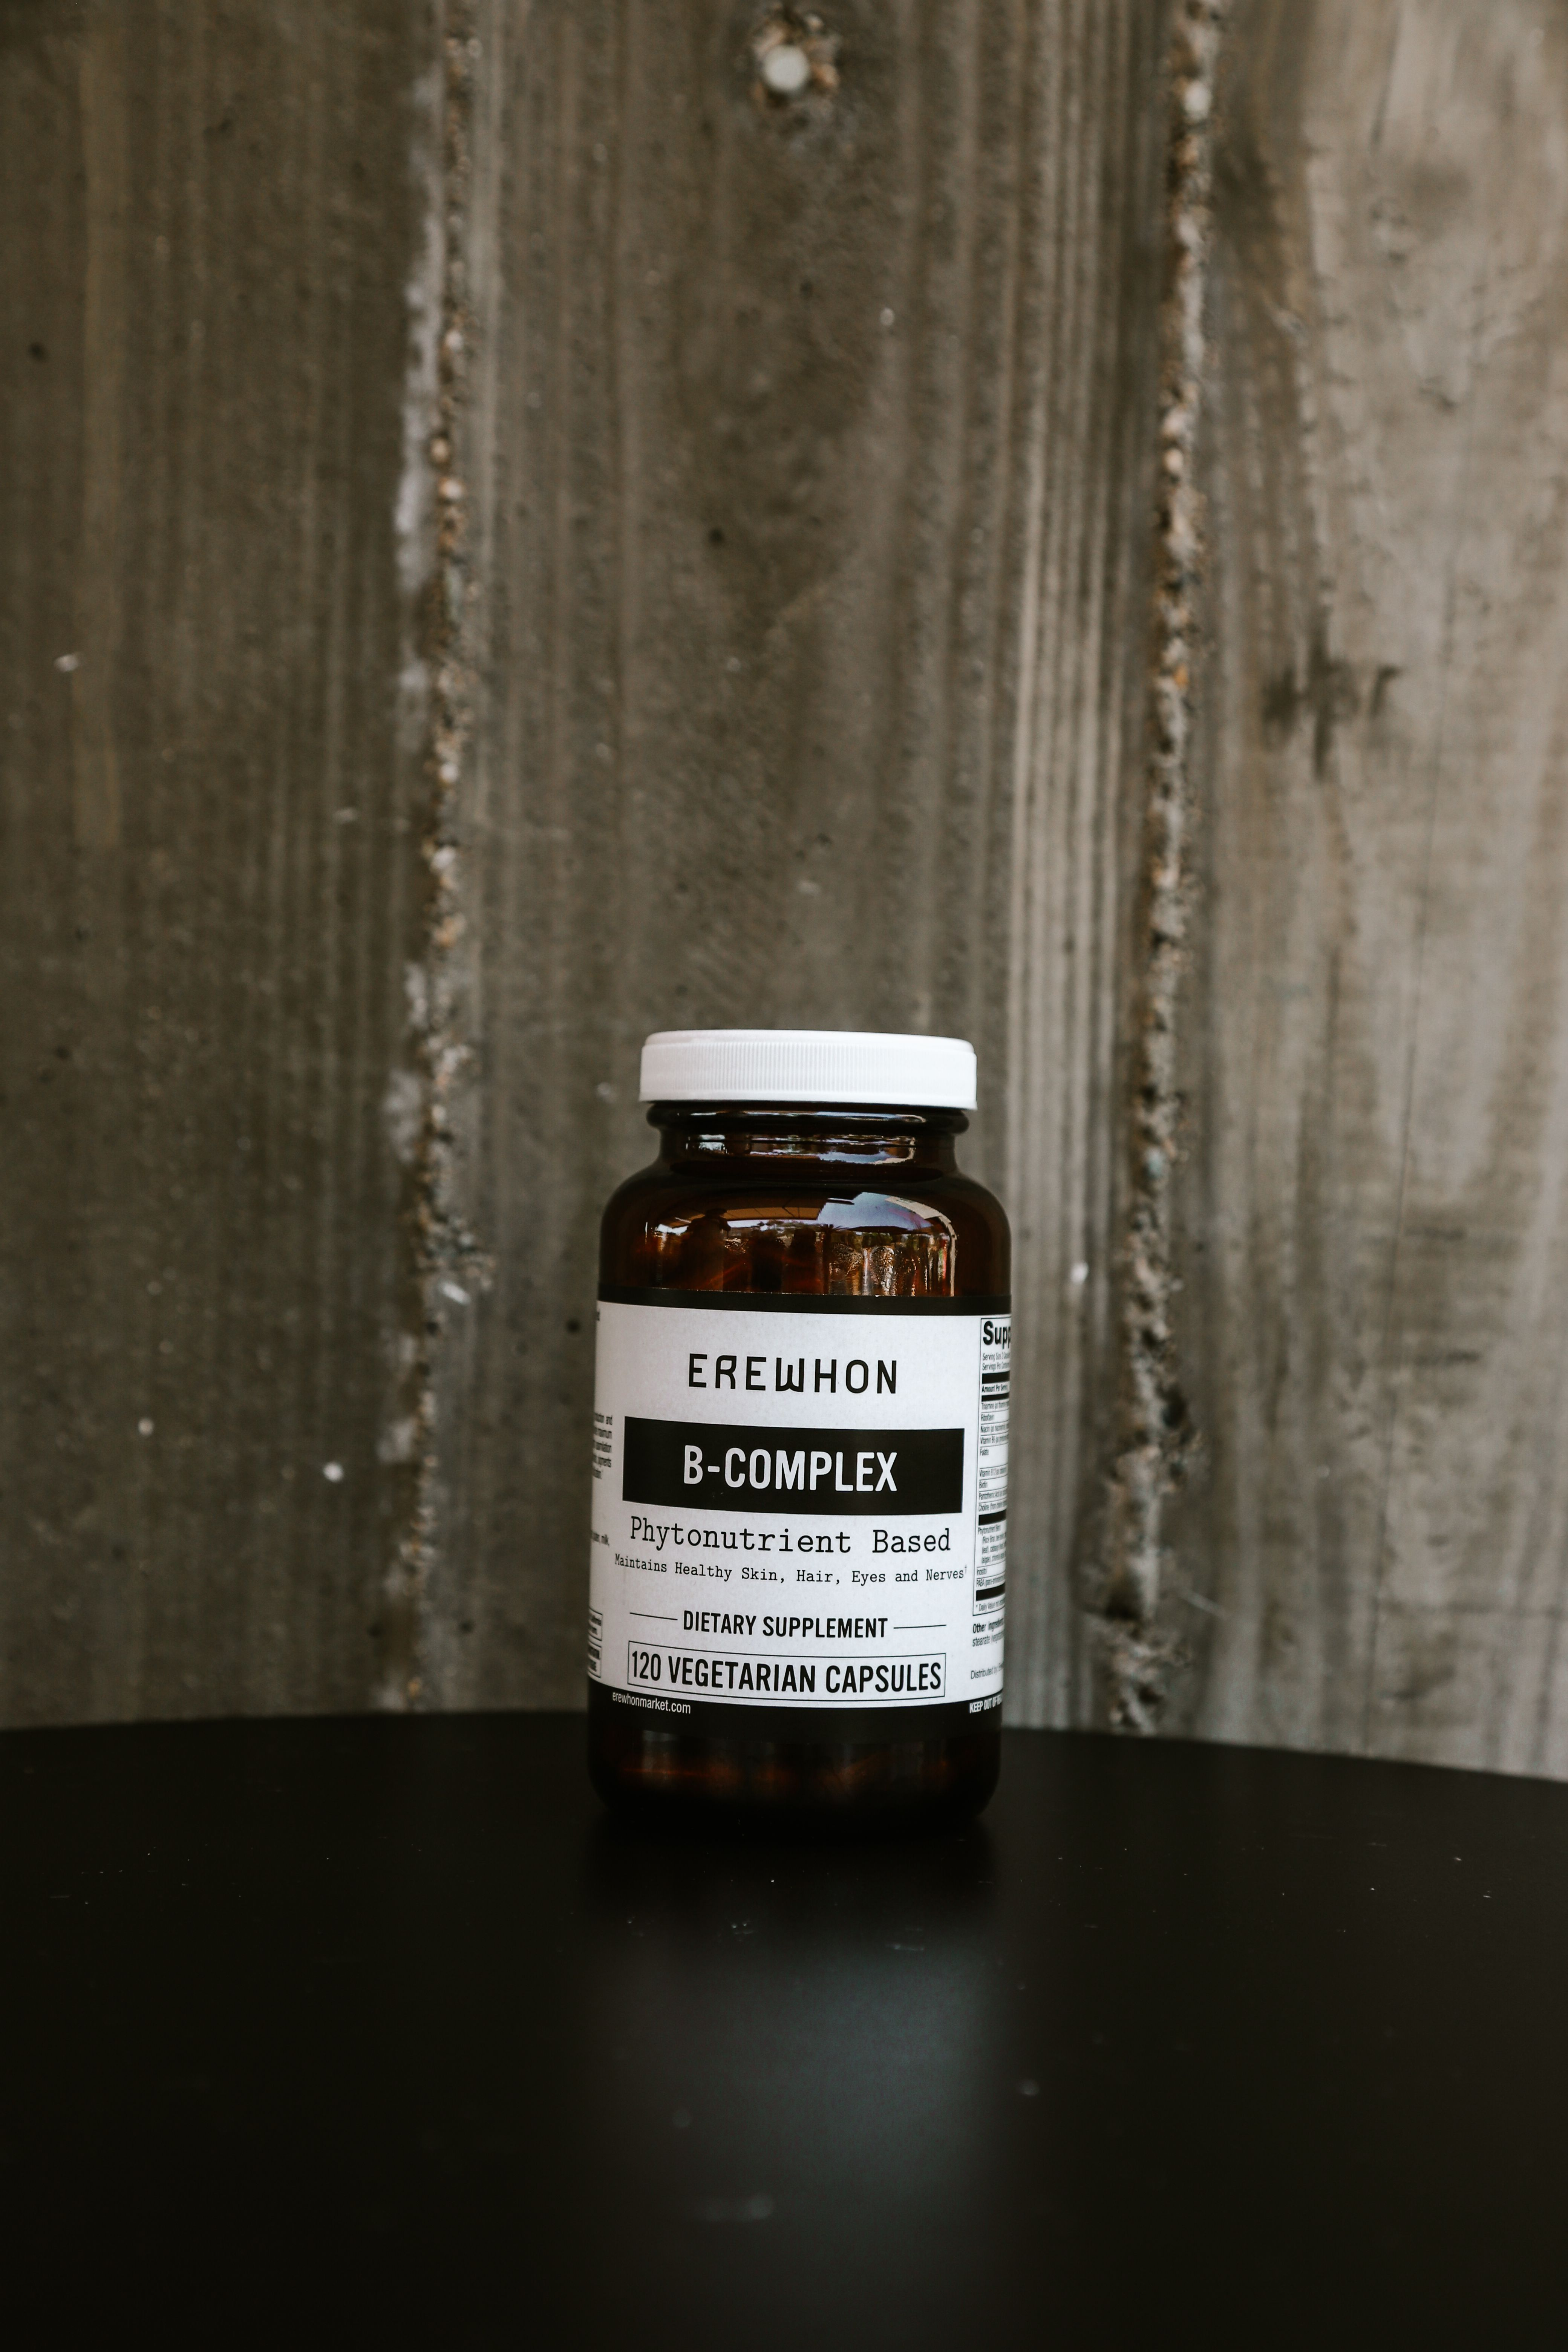 Erewhon Product, container of B-Complex supplement